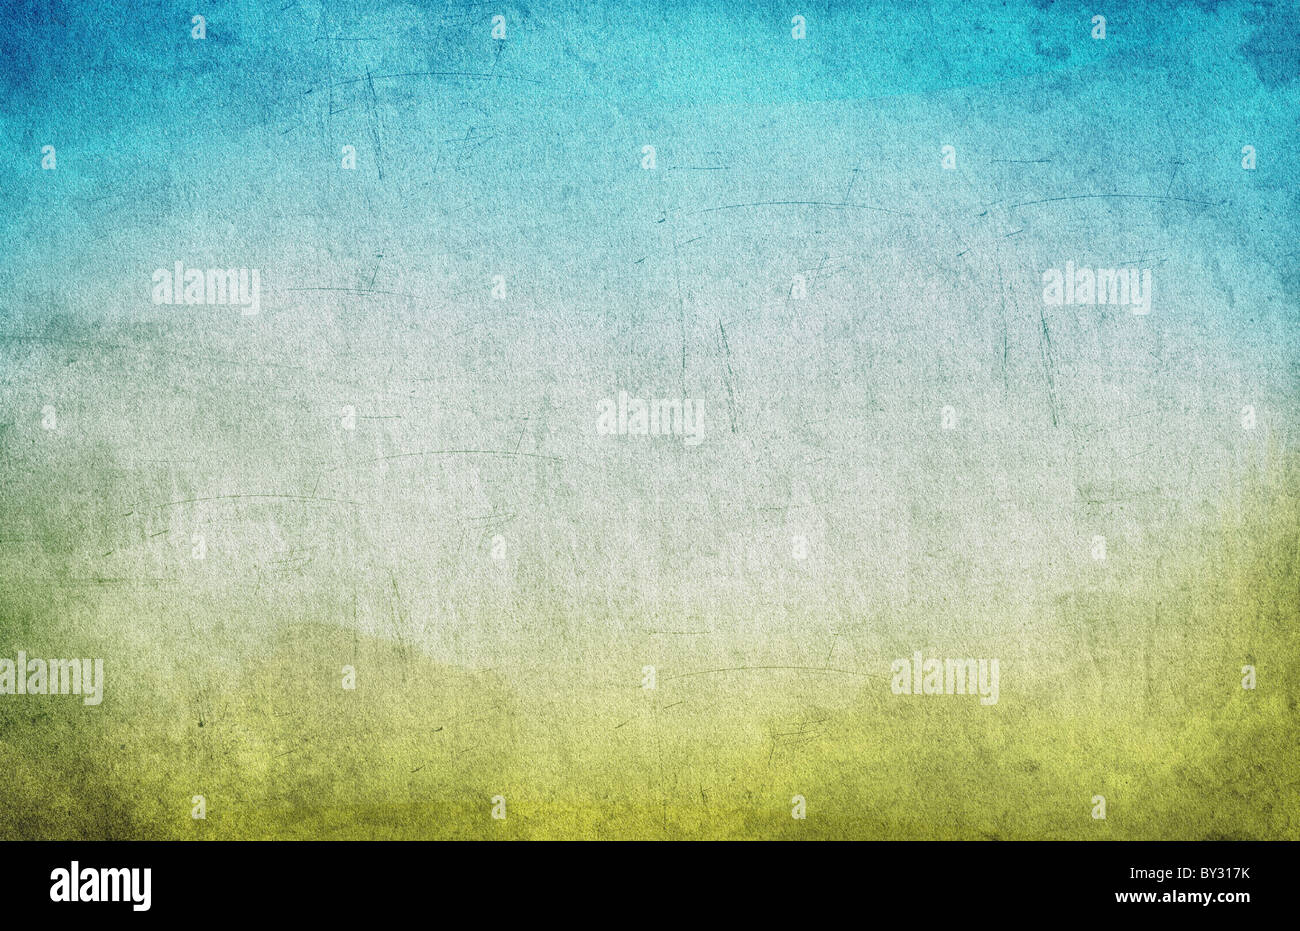 grunge background texture with space for text or image - Stock Image